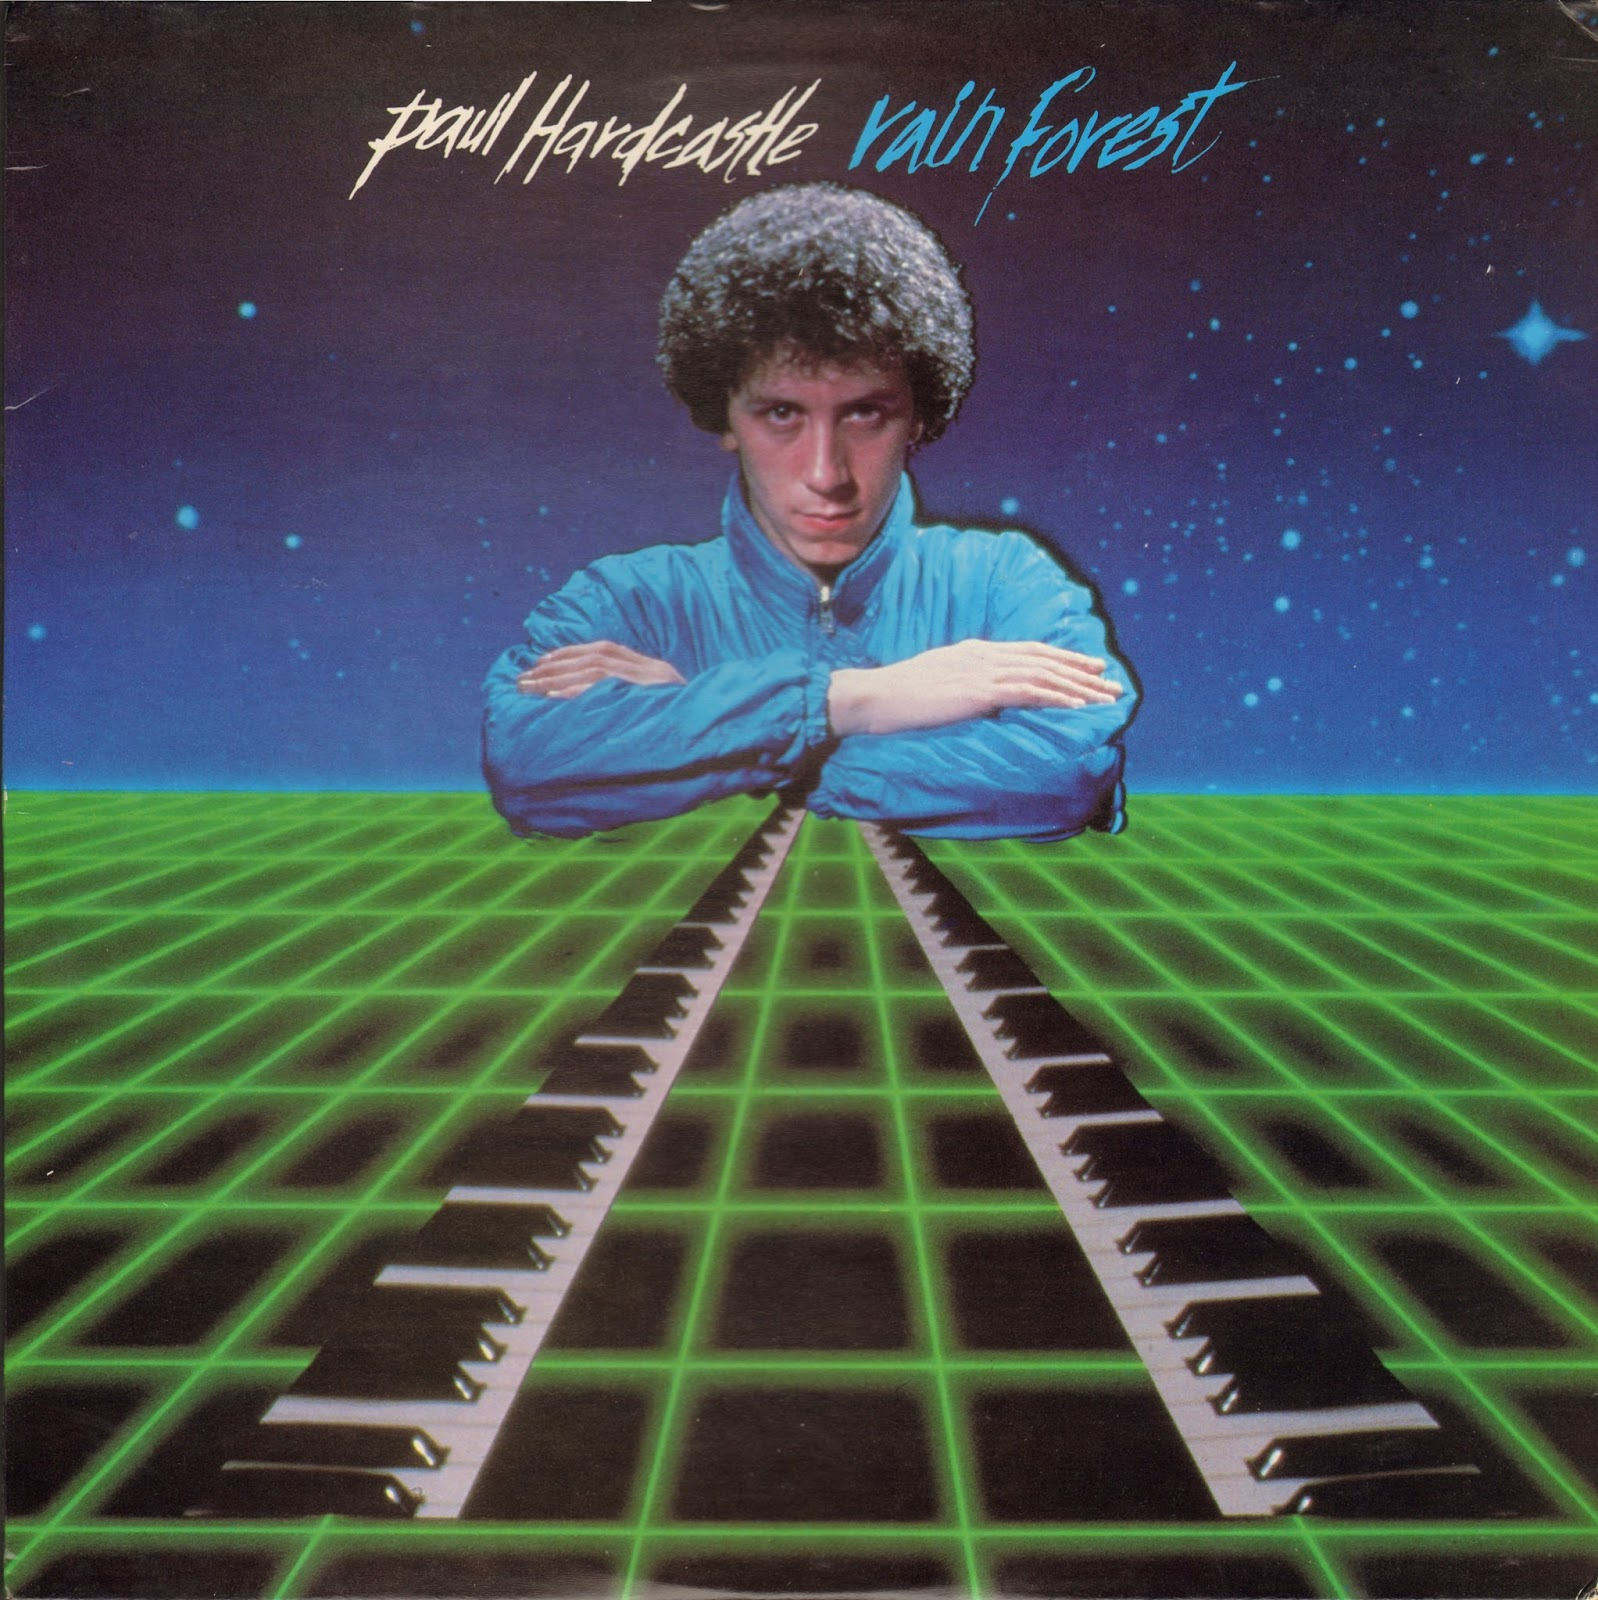 Paul Hardcastle - The Chill Lounge (Volume 2)